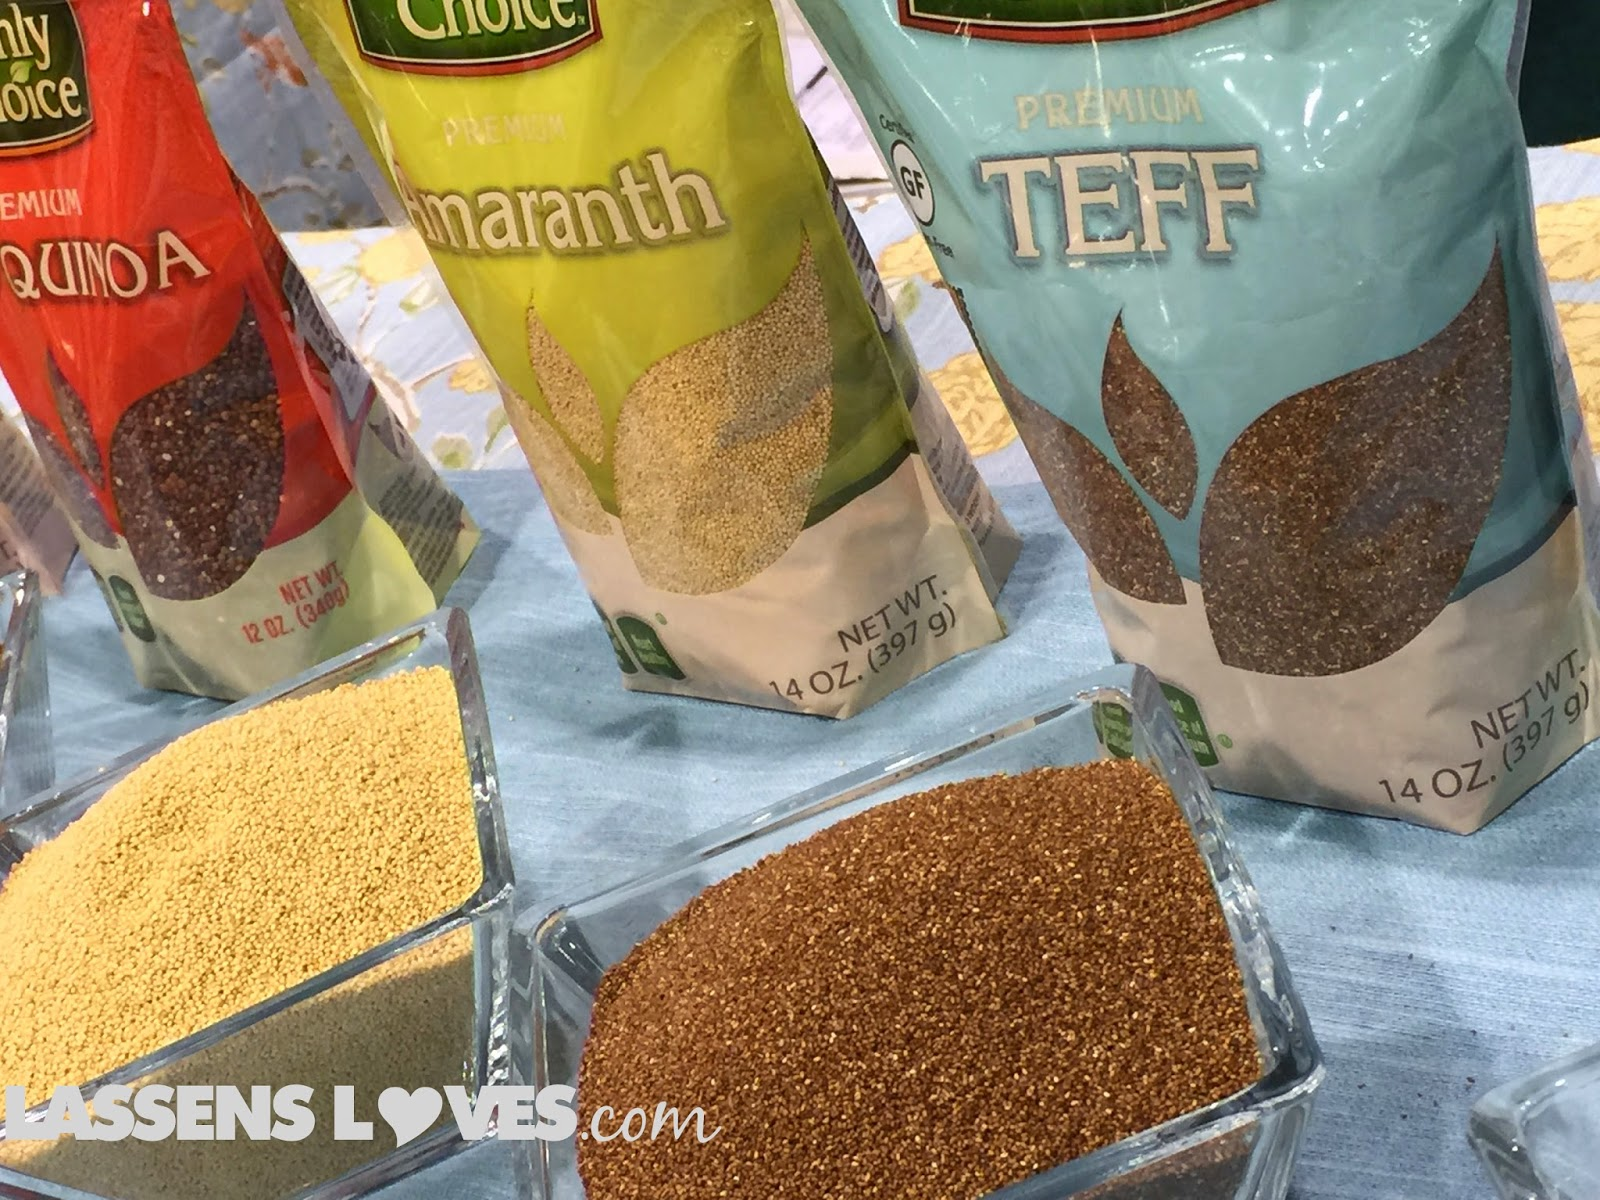 Expo+West+2015, Natural+Foods+Show, New+Natural+Products, quinoa+grains, amaranth+grain, teff+grain